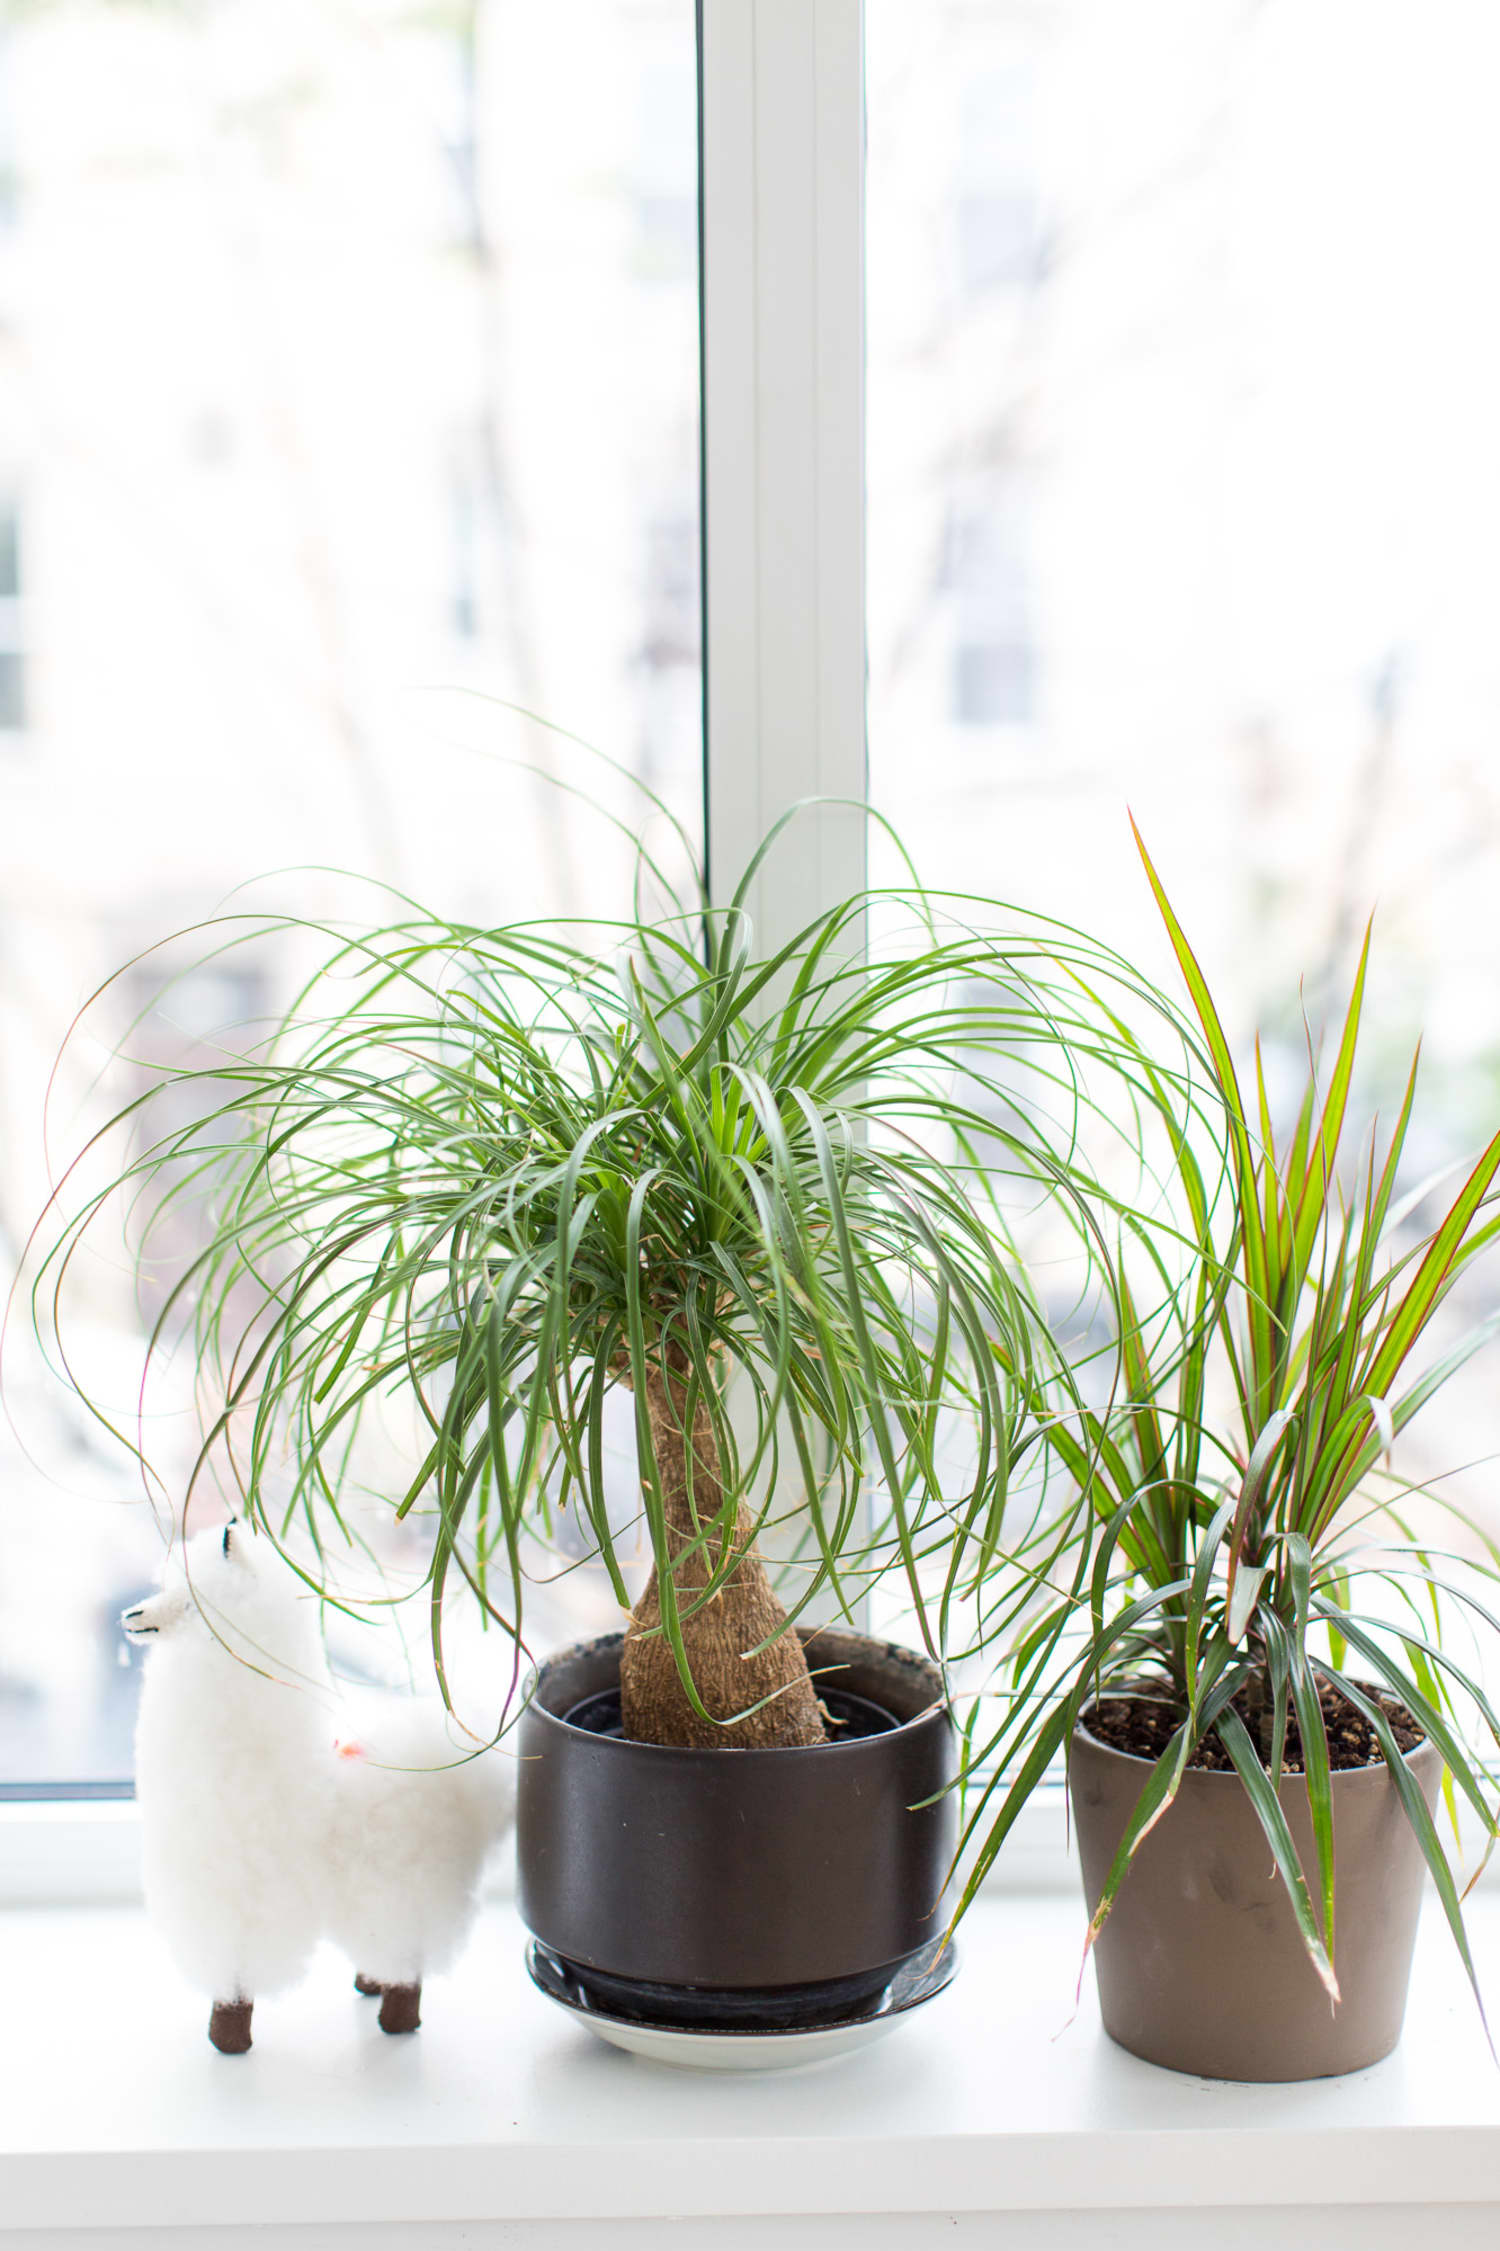 Ponytail Palm Tree: Our Best Tips For Growing and Care